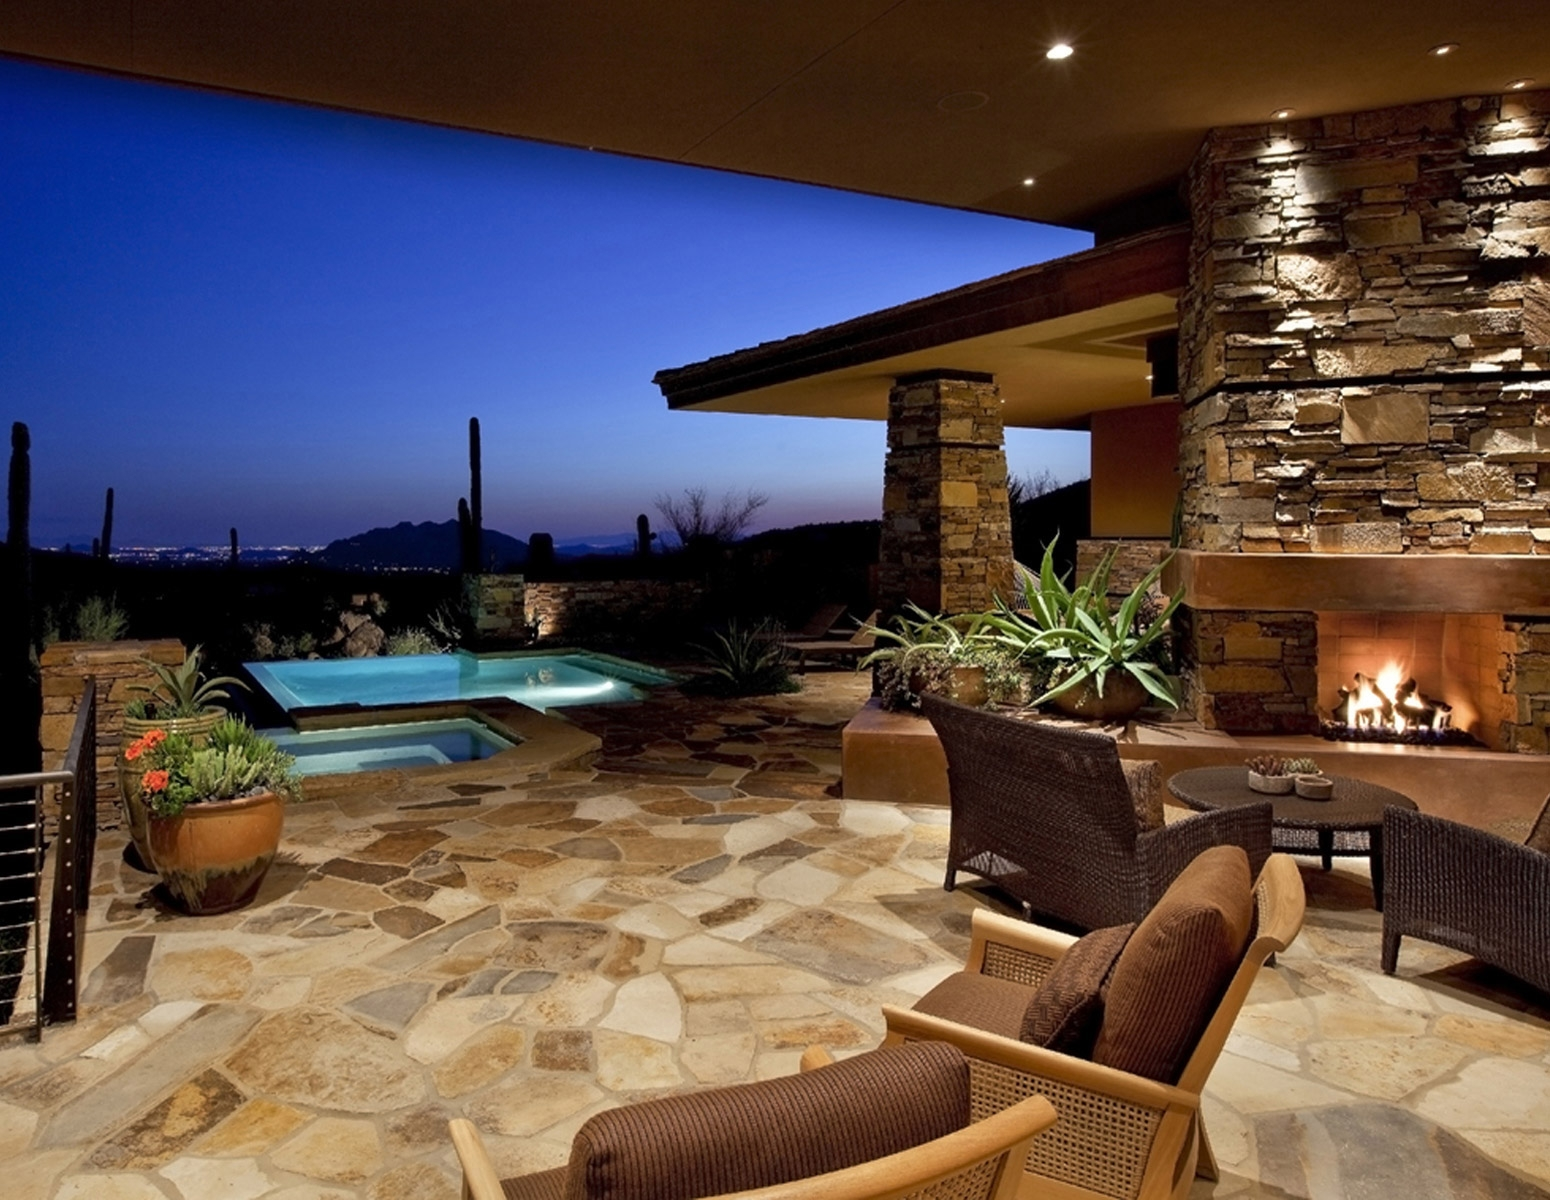 Houzz Expands Operations Into Arizona. Home Interior Design ...